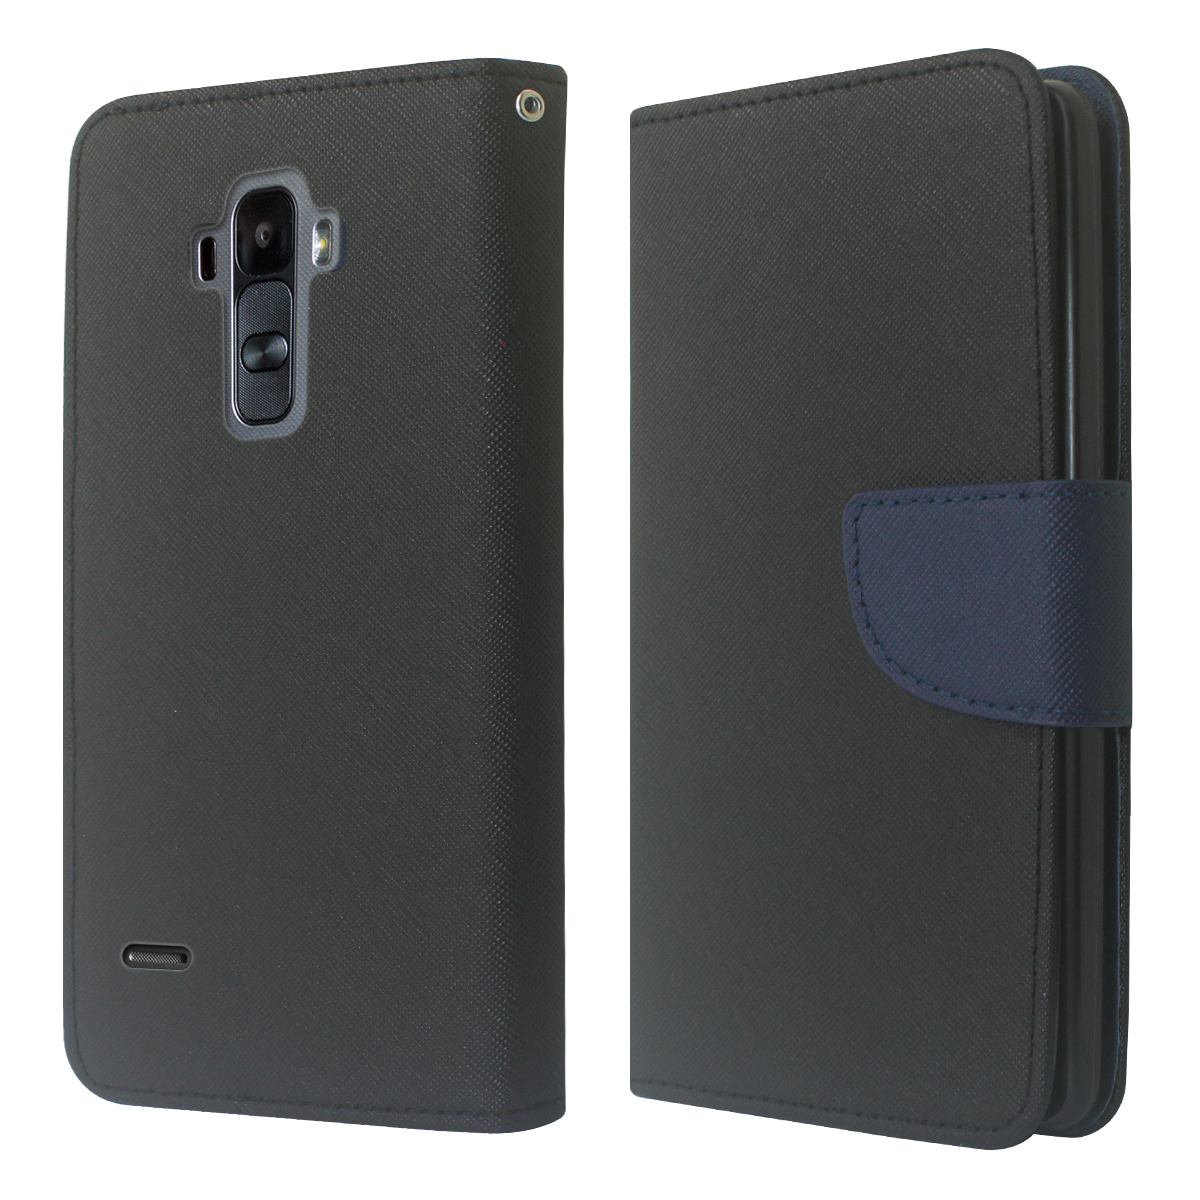 Cbus Wireless Luxury PU Leather Flip Wallet Cover Case with Credit Card Holder for LG G Stylo - Black